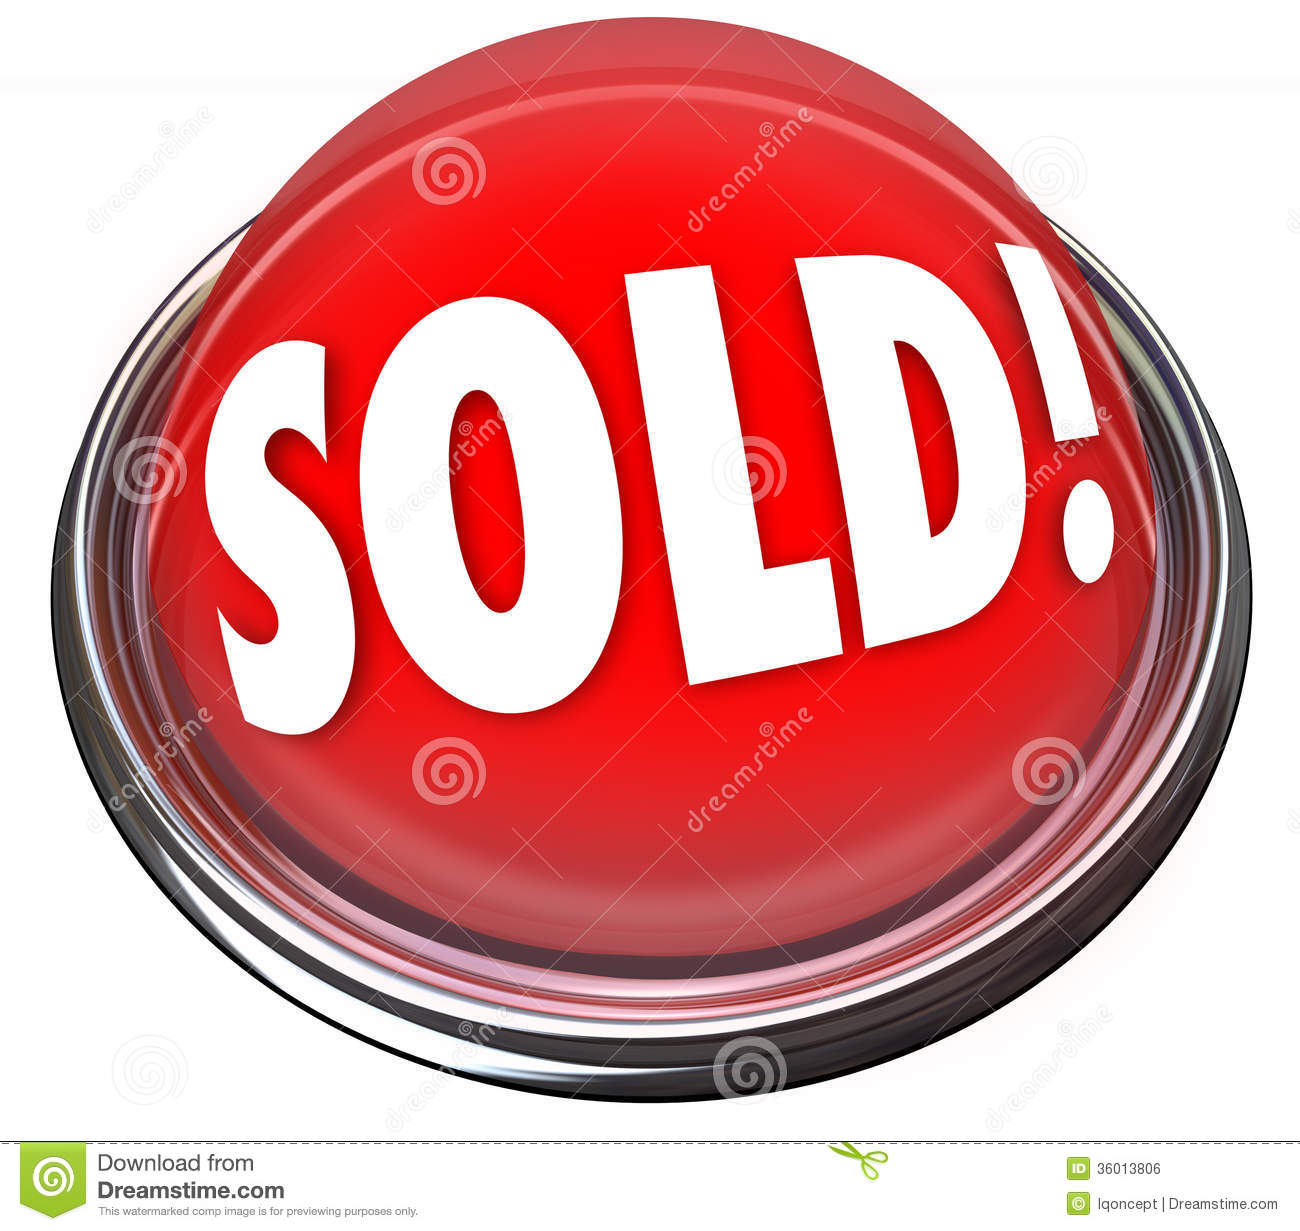 Sold red button light final deal auction bid stock for How to bid at a live auction